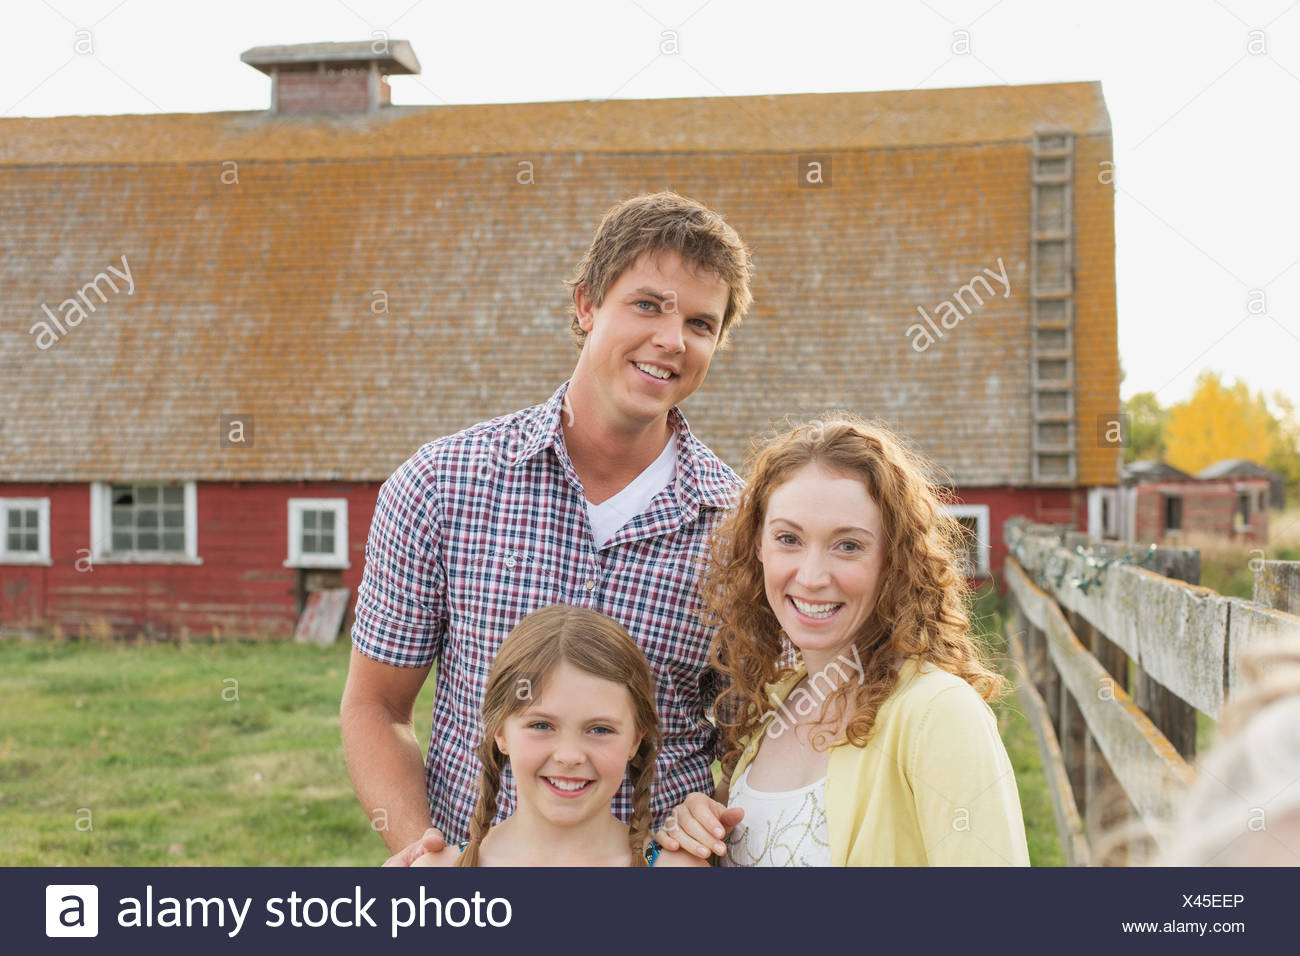 Portrait of young family in front of barn. - Stock Image